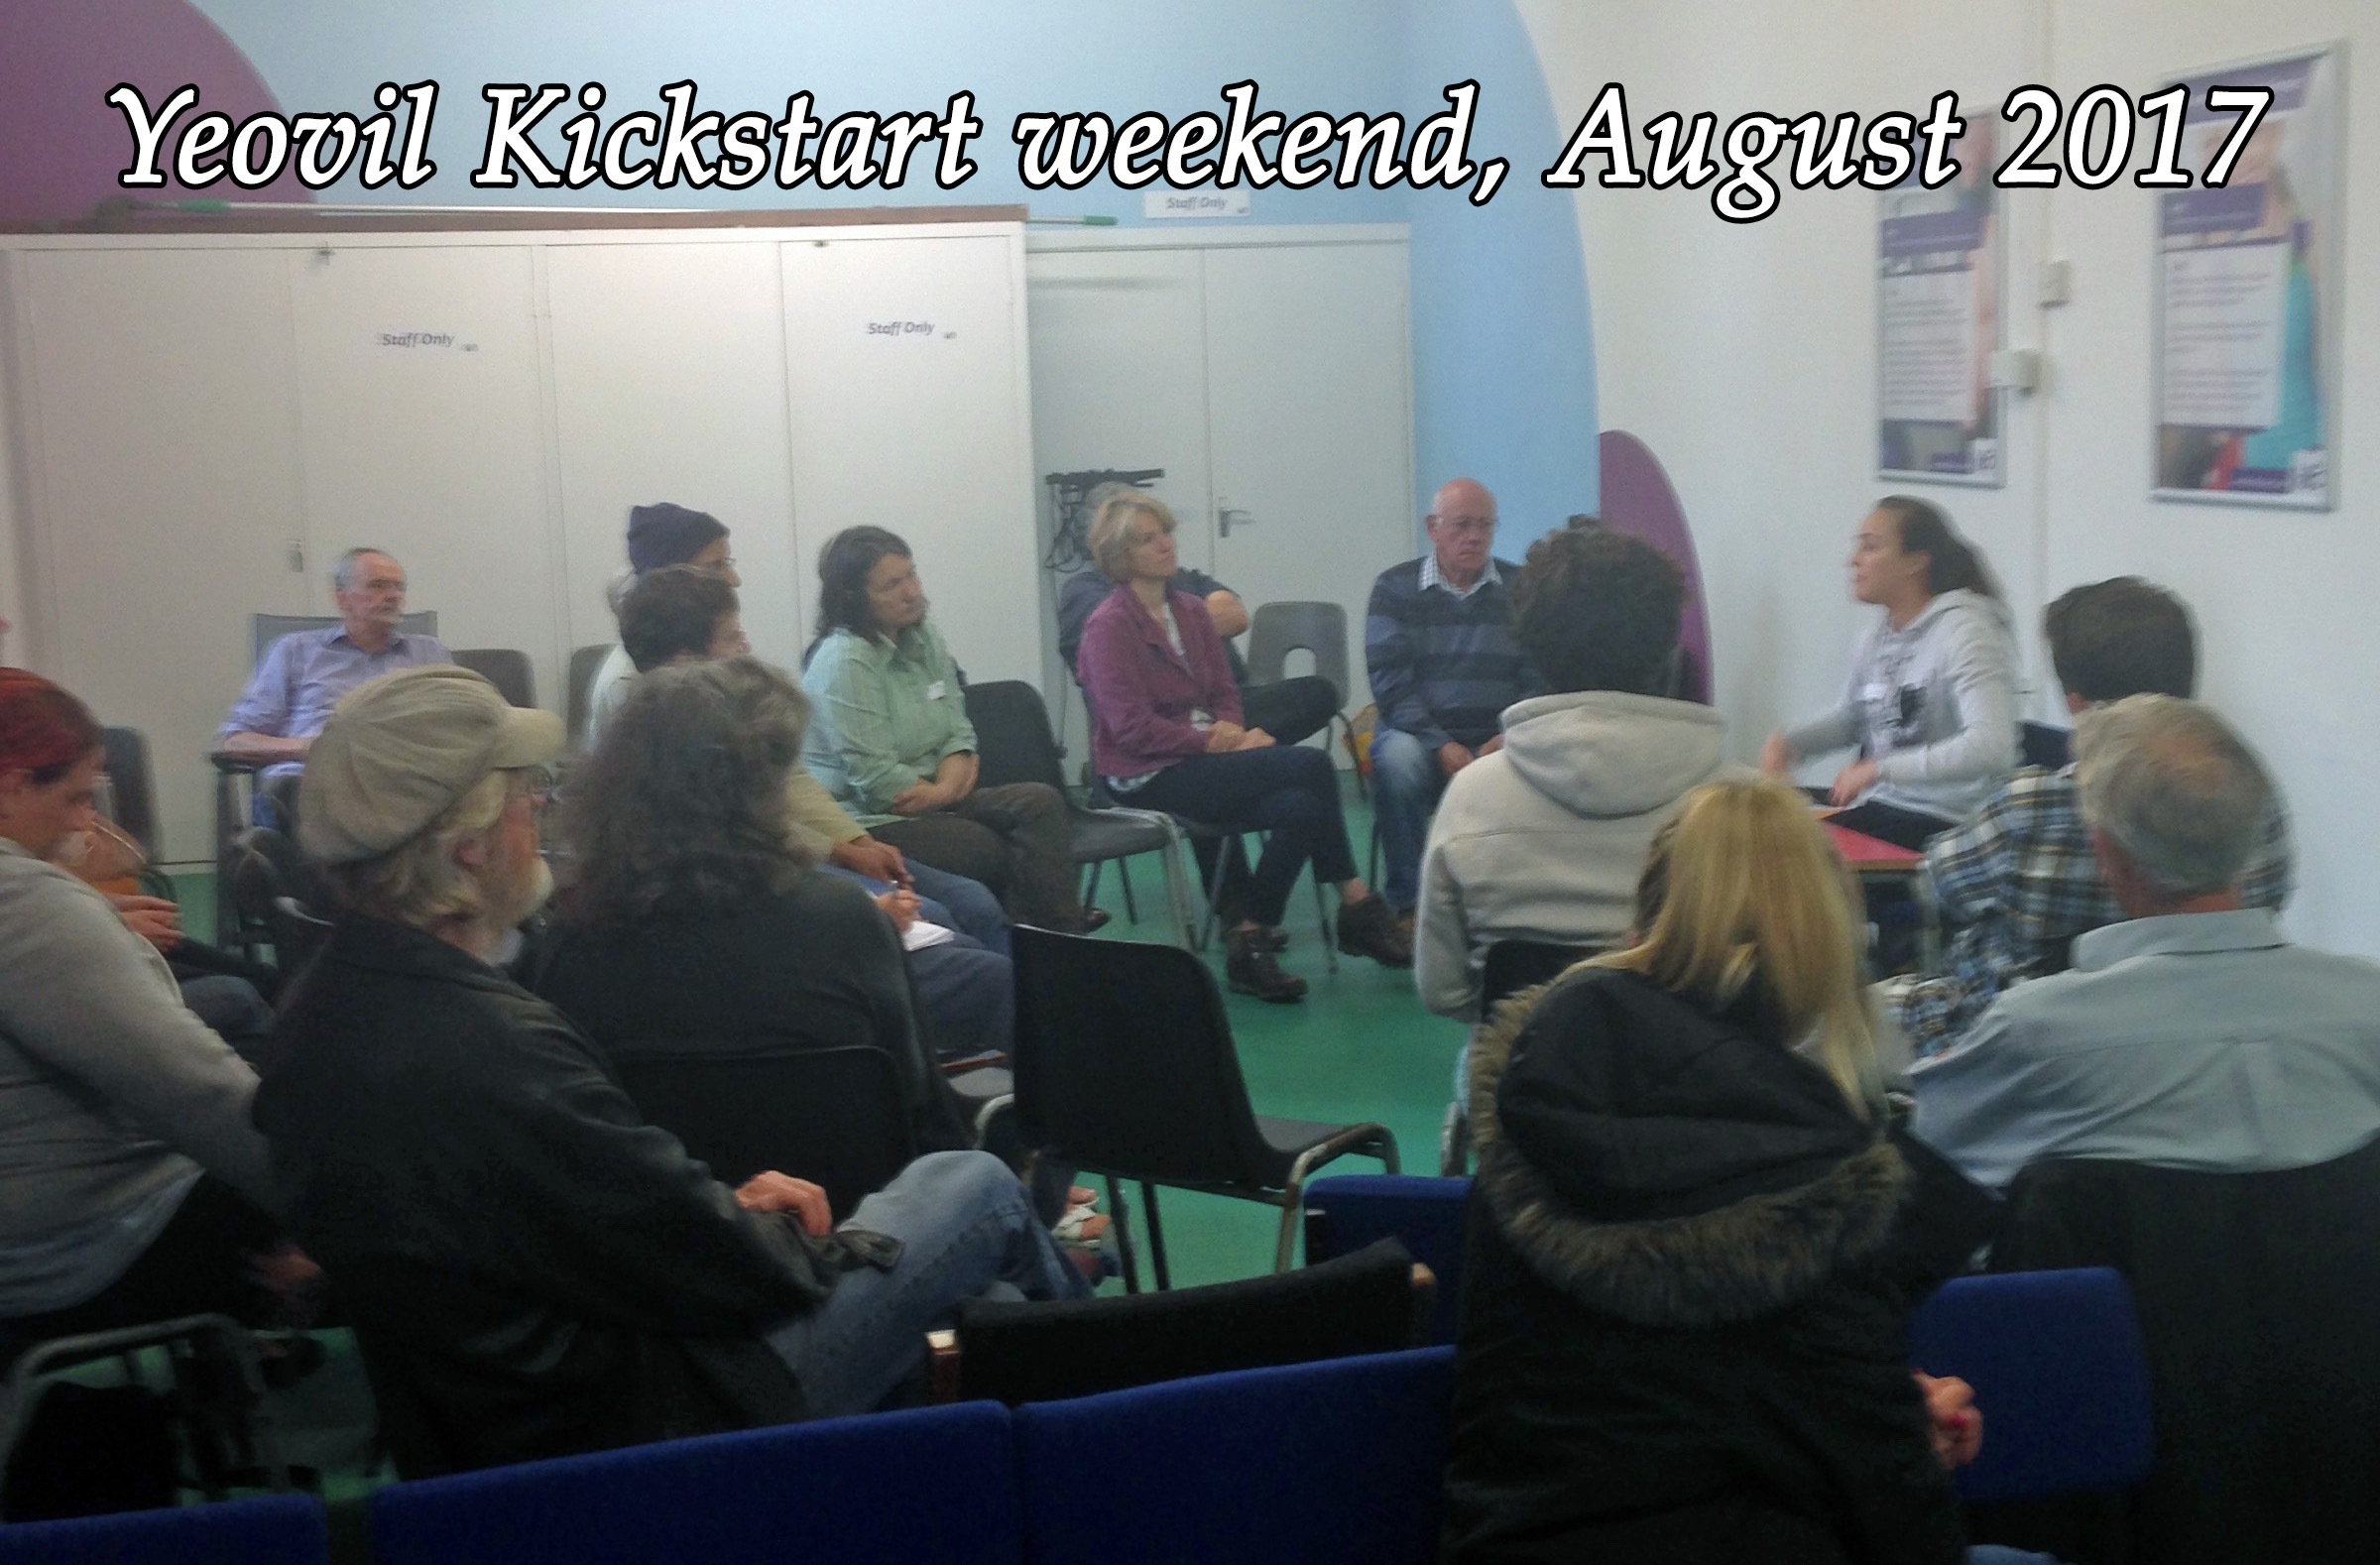 A photo of the Yeovil kickstart weekend in August 2017